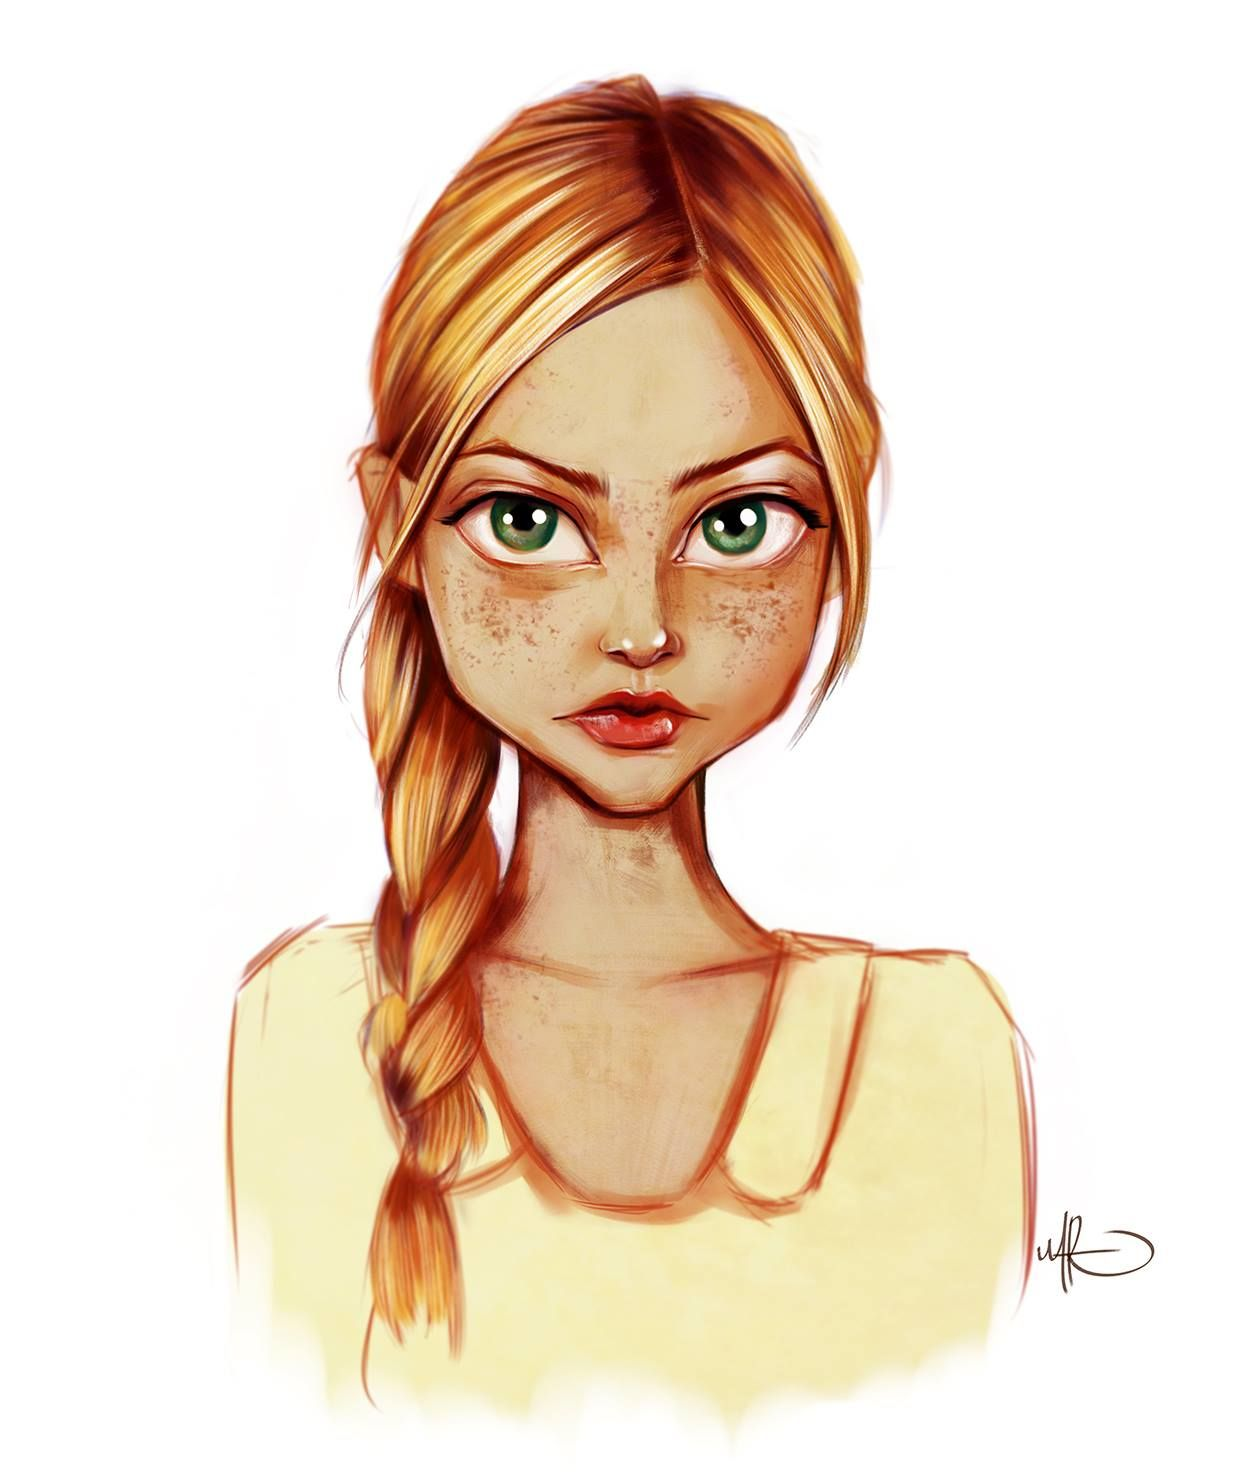 Girl sketch color by MARIO CALVA